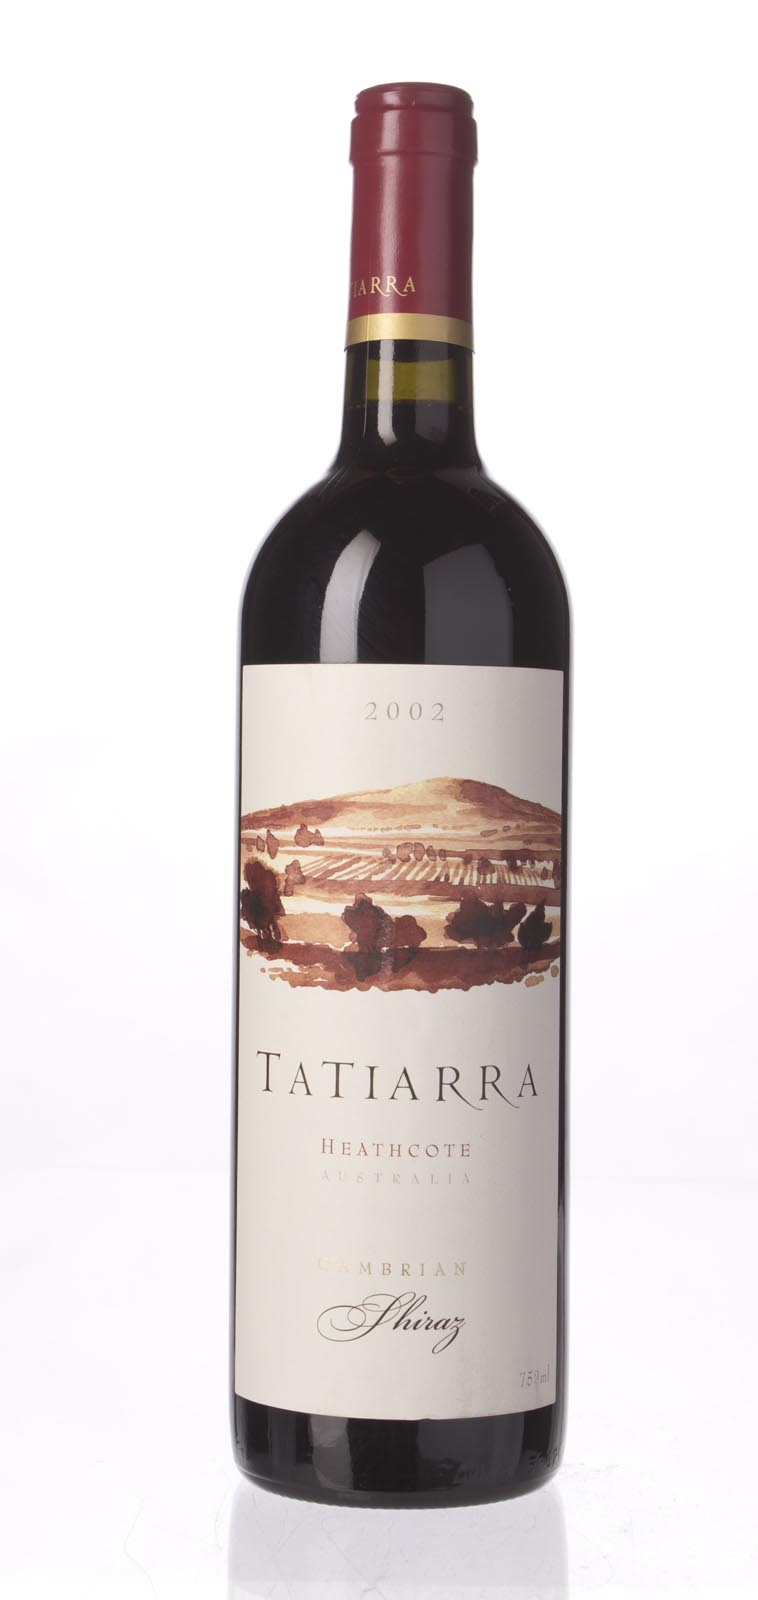 Tatiarra Shiraz Cambrian 2002, 750mL (WA91) from The BPW - Merchants of rare and fine wines.